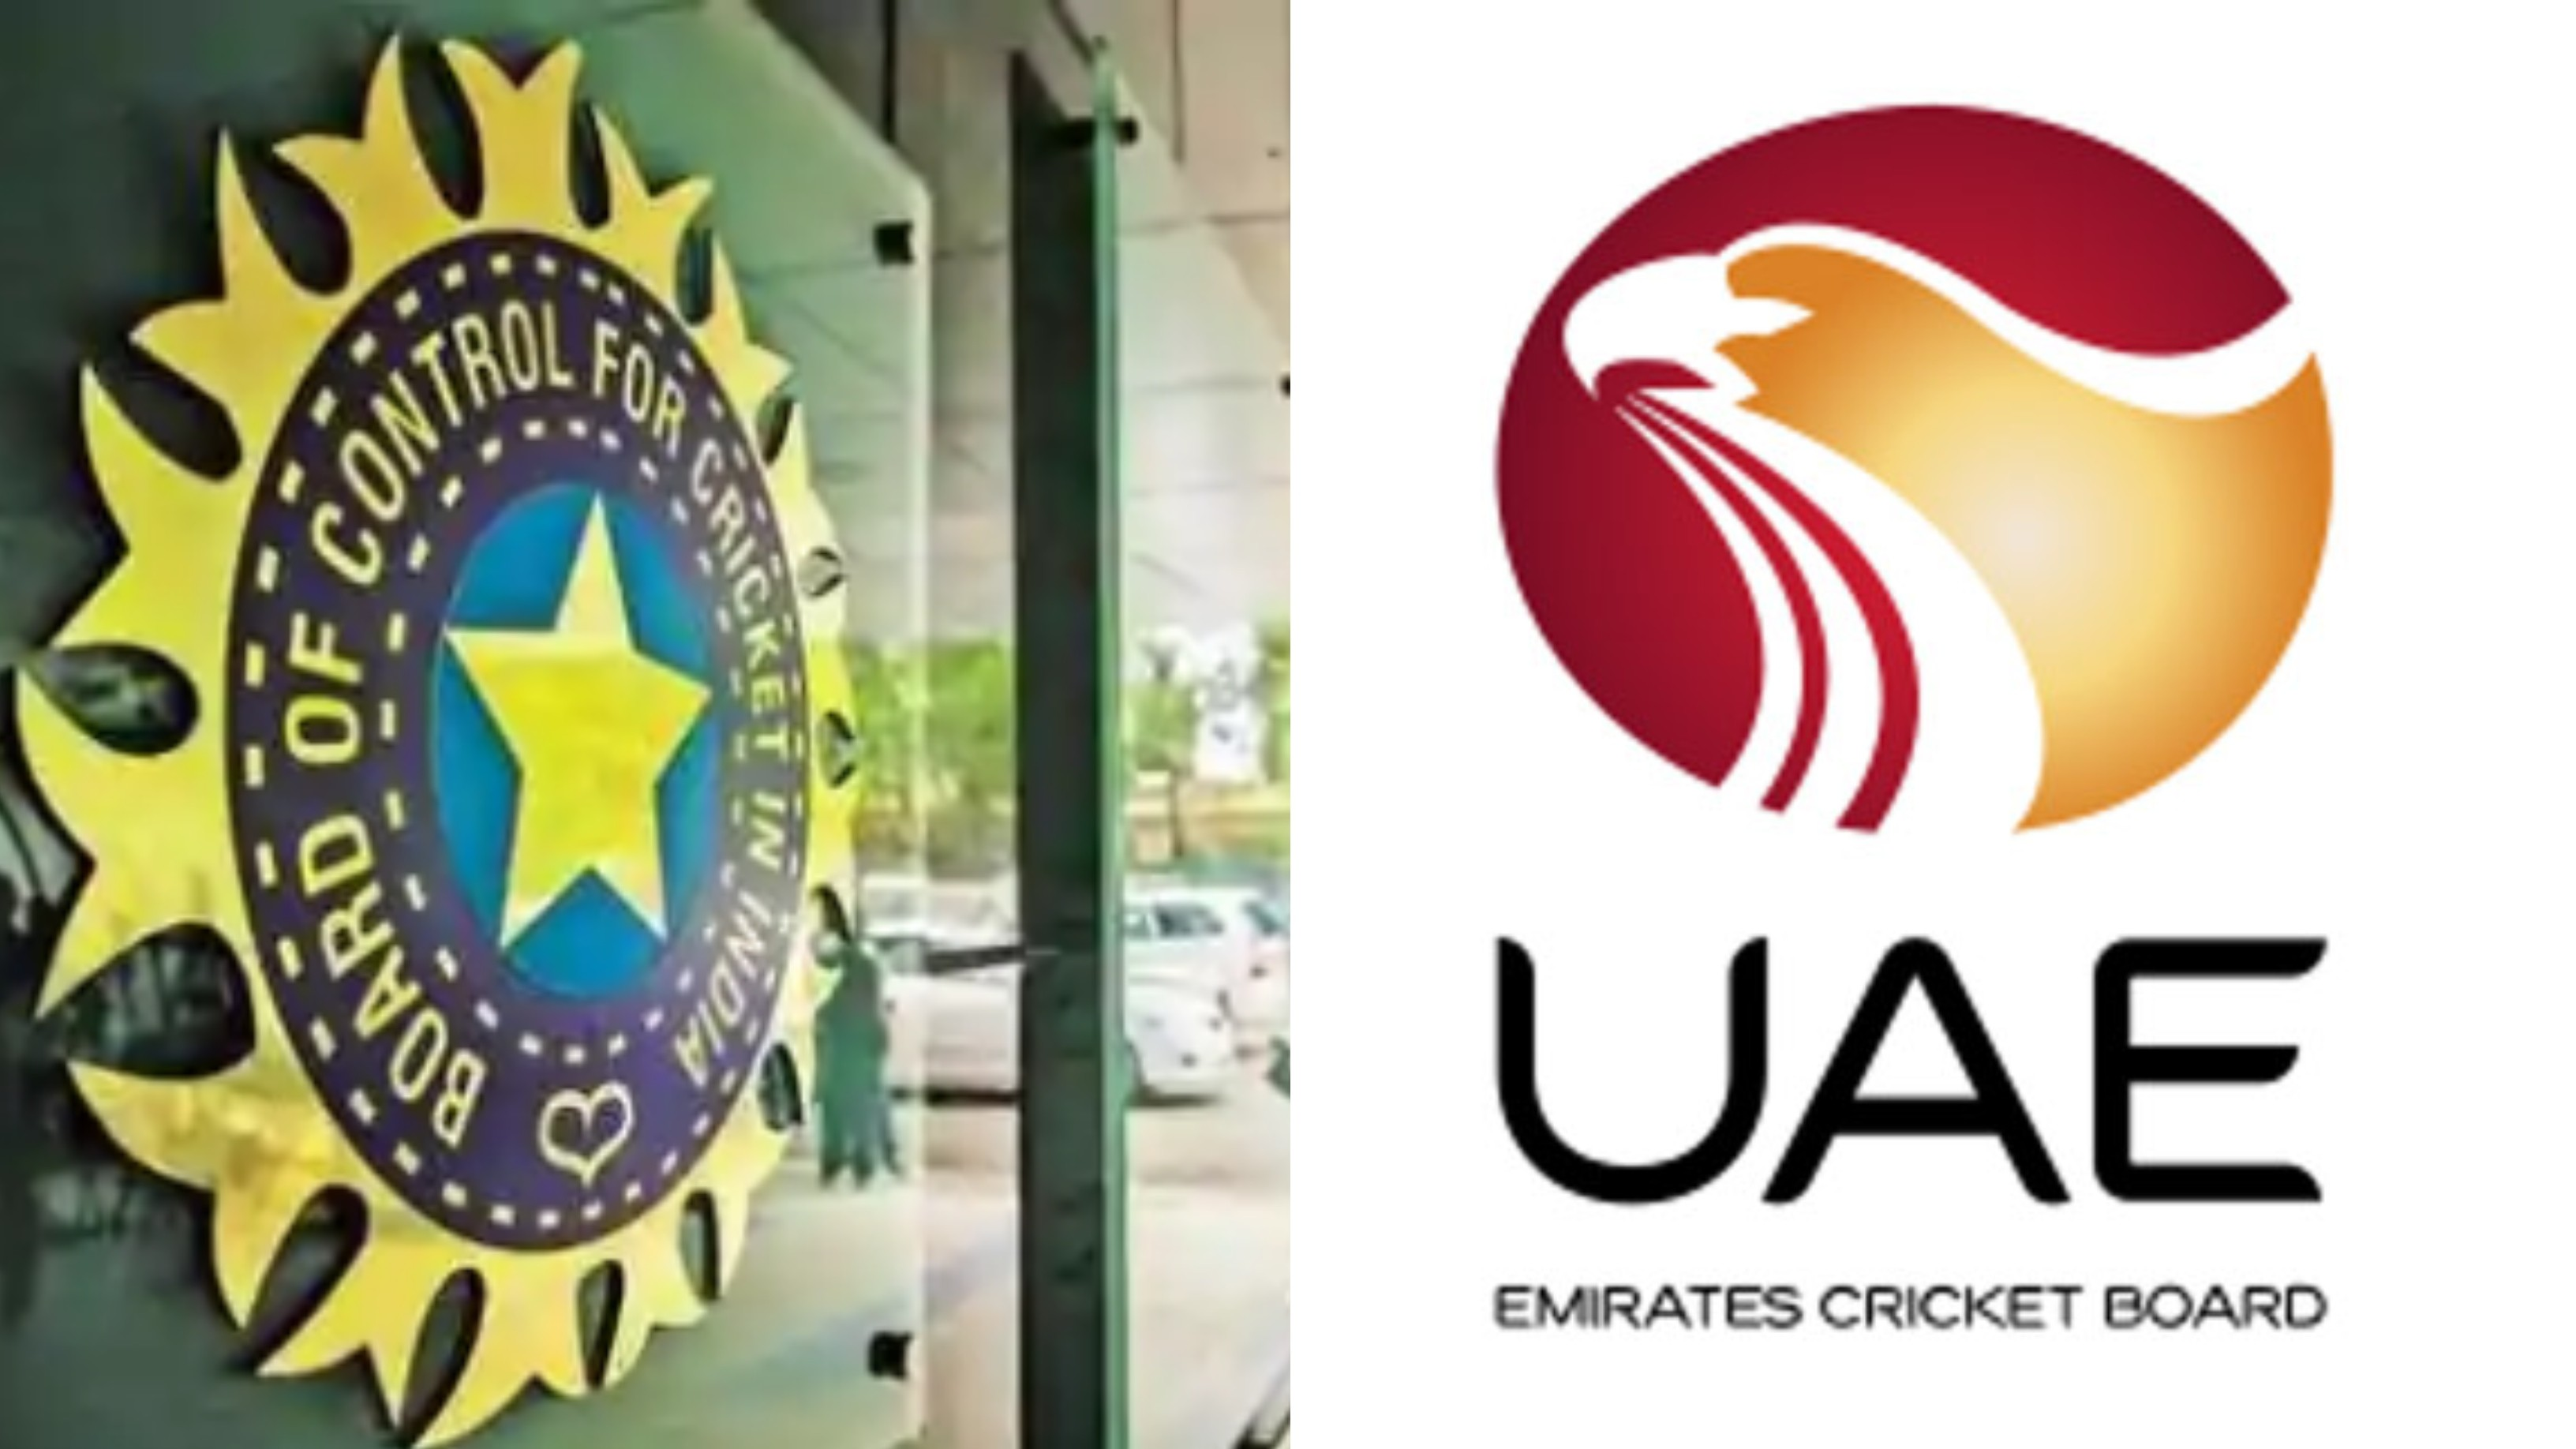 IPL 2020: BCCI and Emirates Cricket Board sign MoU and hosting agreement ahead of the IPL 13